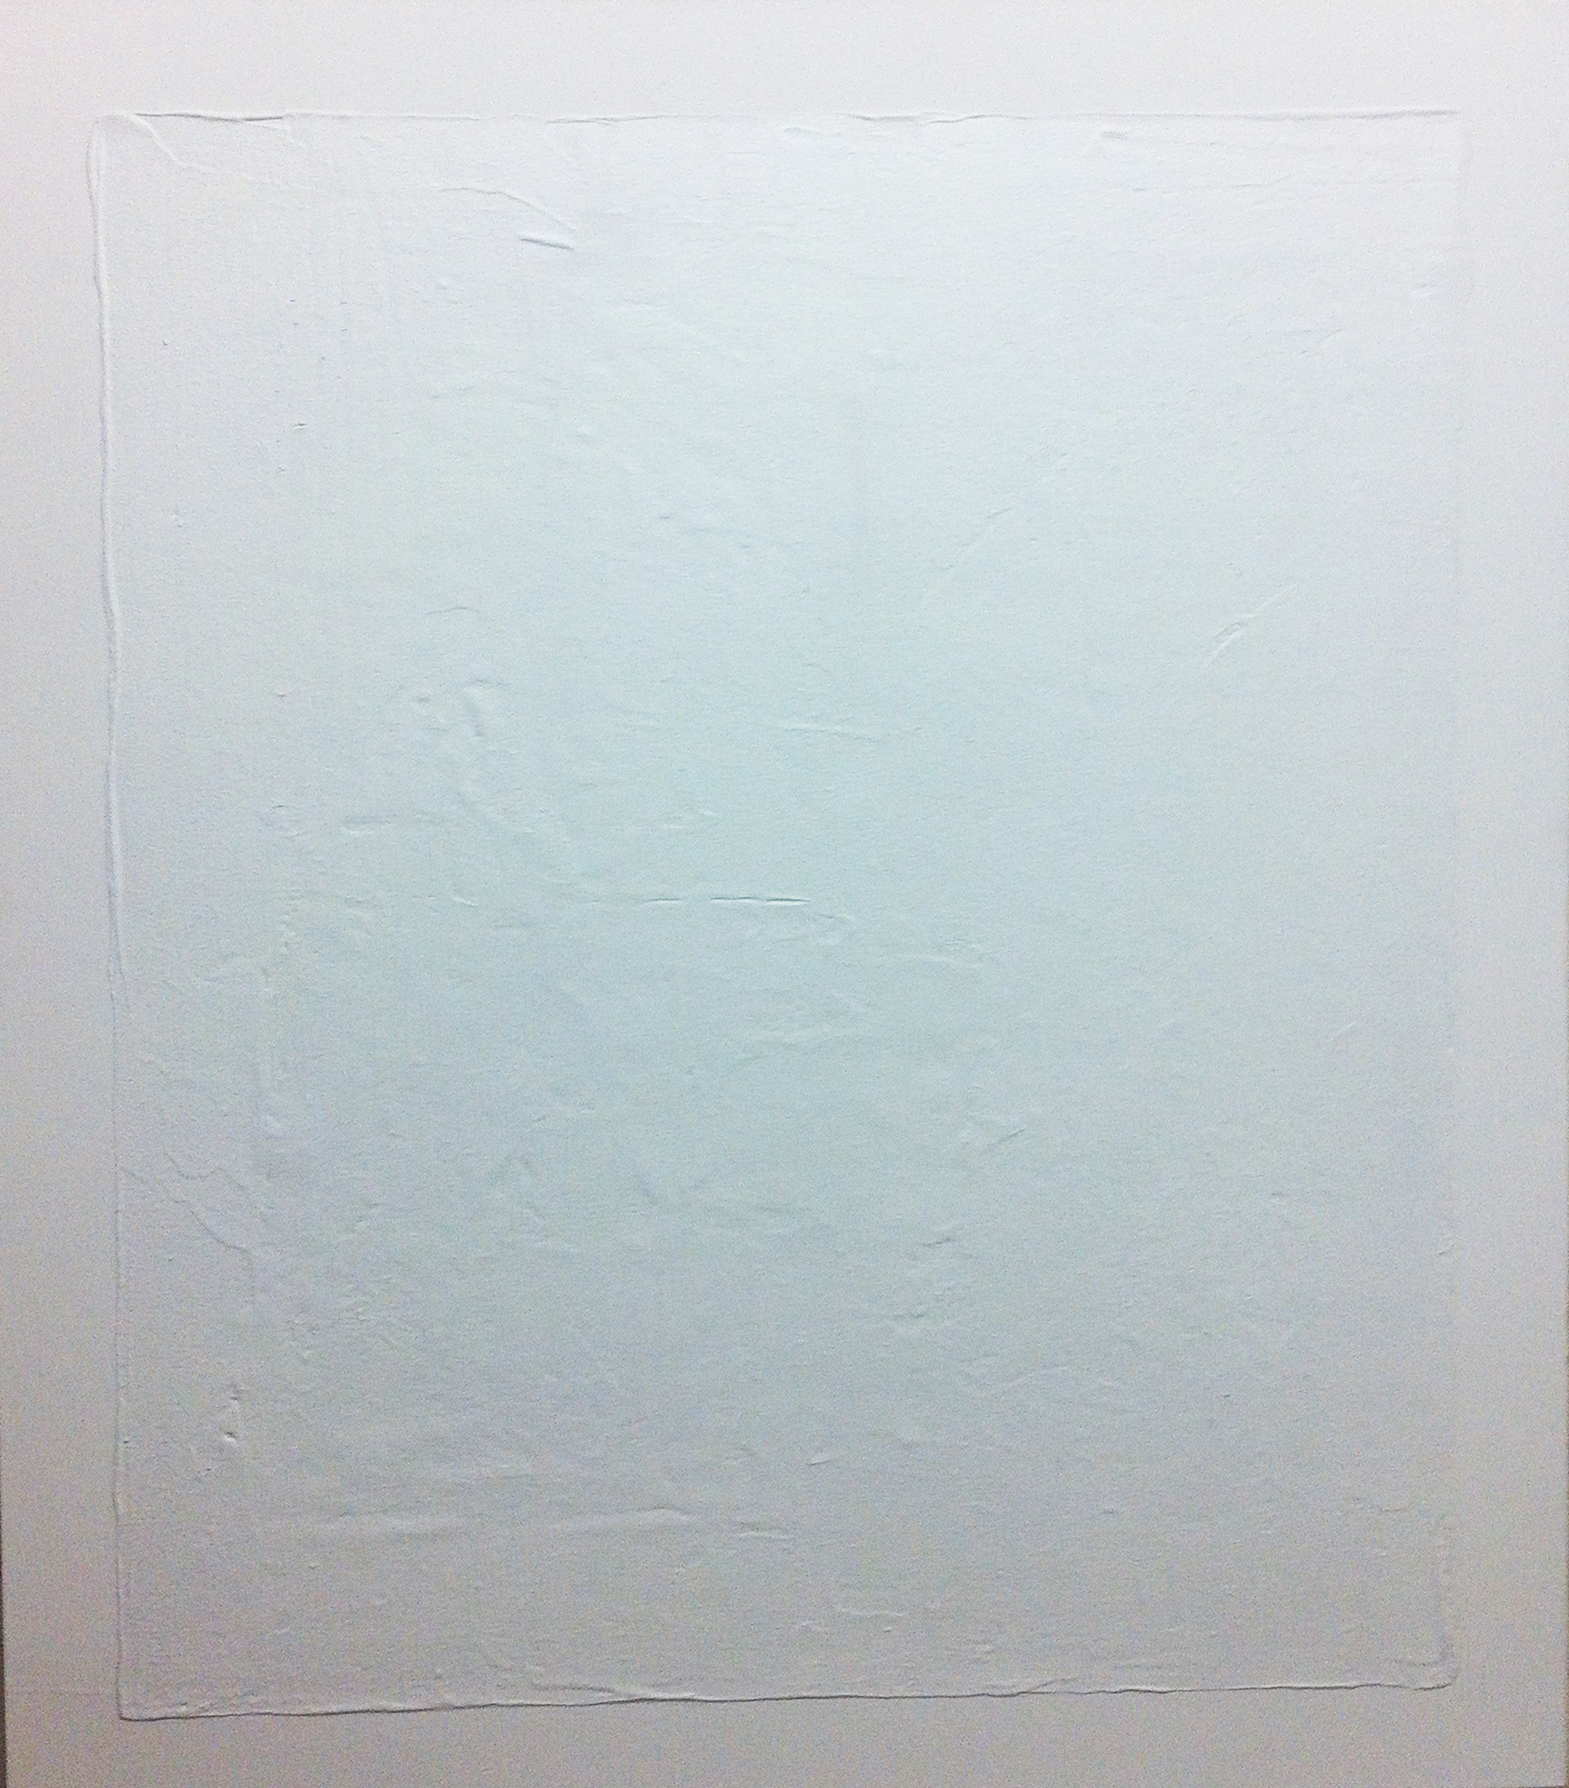 2012, Untitled, 140x120 cm, acrylic and concrete on canvas